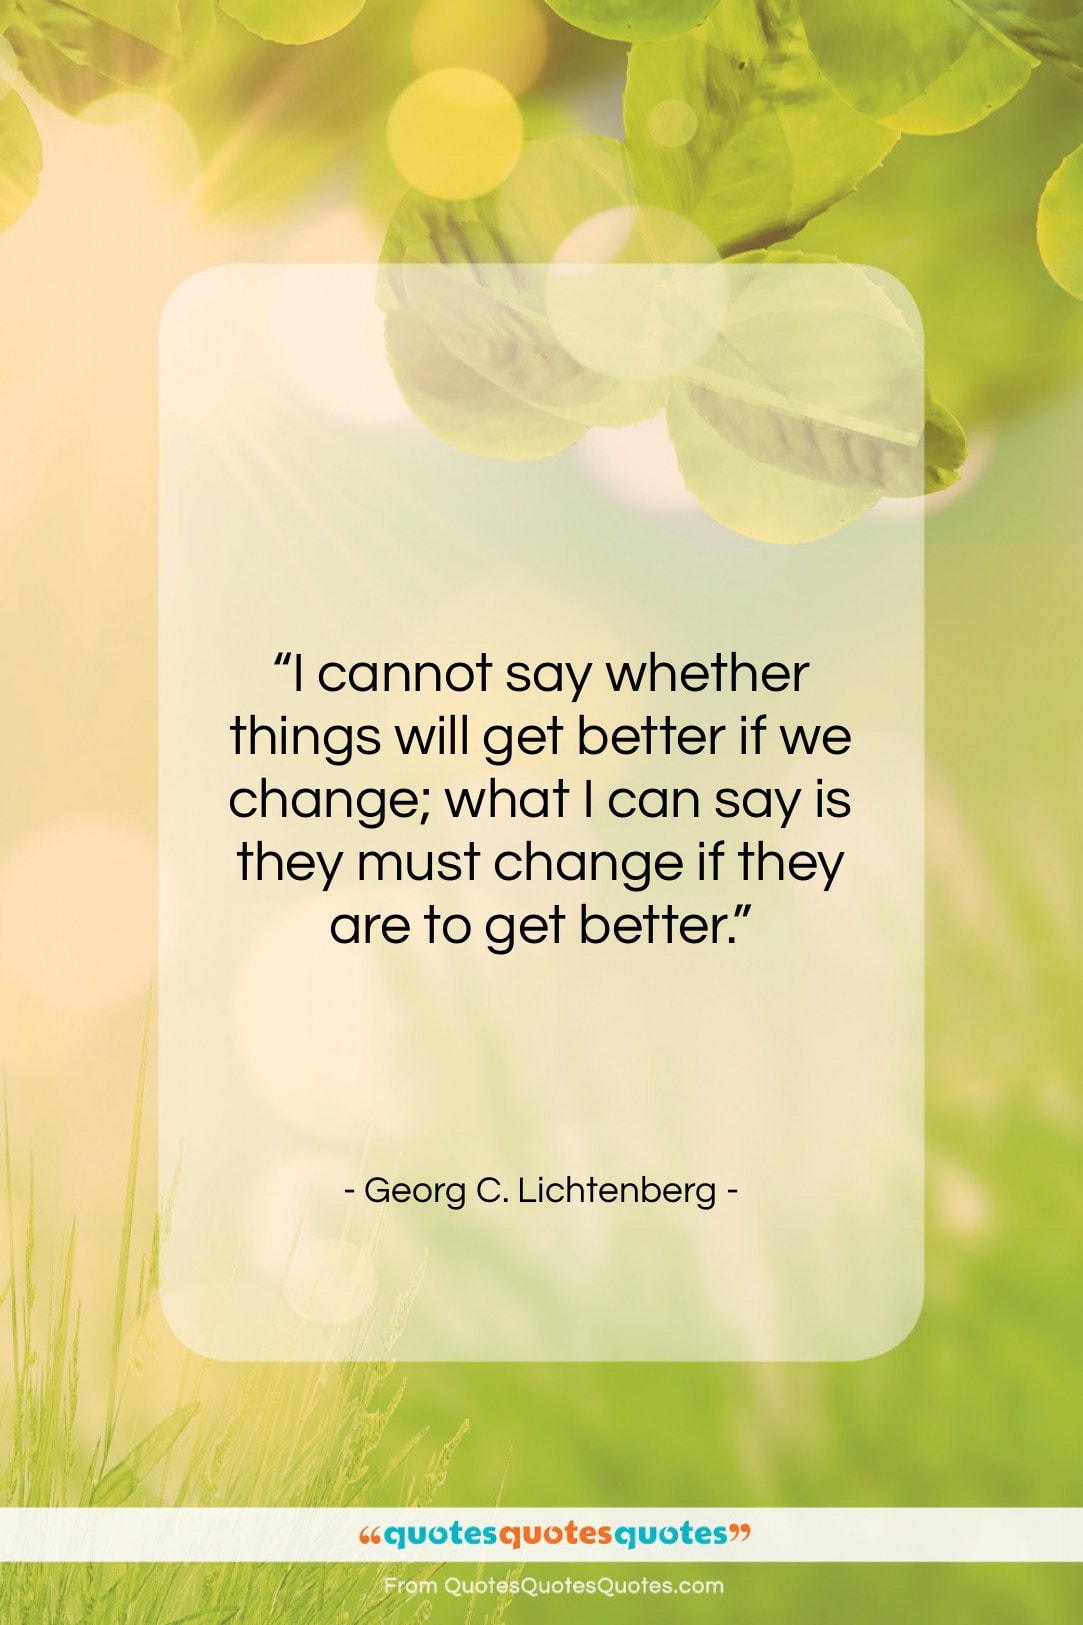 """Georg C. Lichtenberg quote: """"I cannot say whether things will get…""""- at QuotesQuotesQuotes.com"""